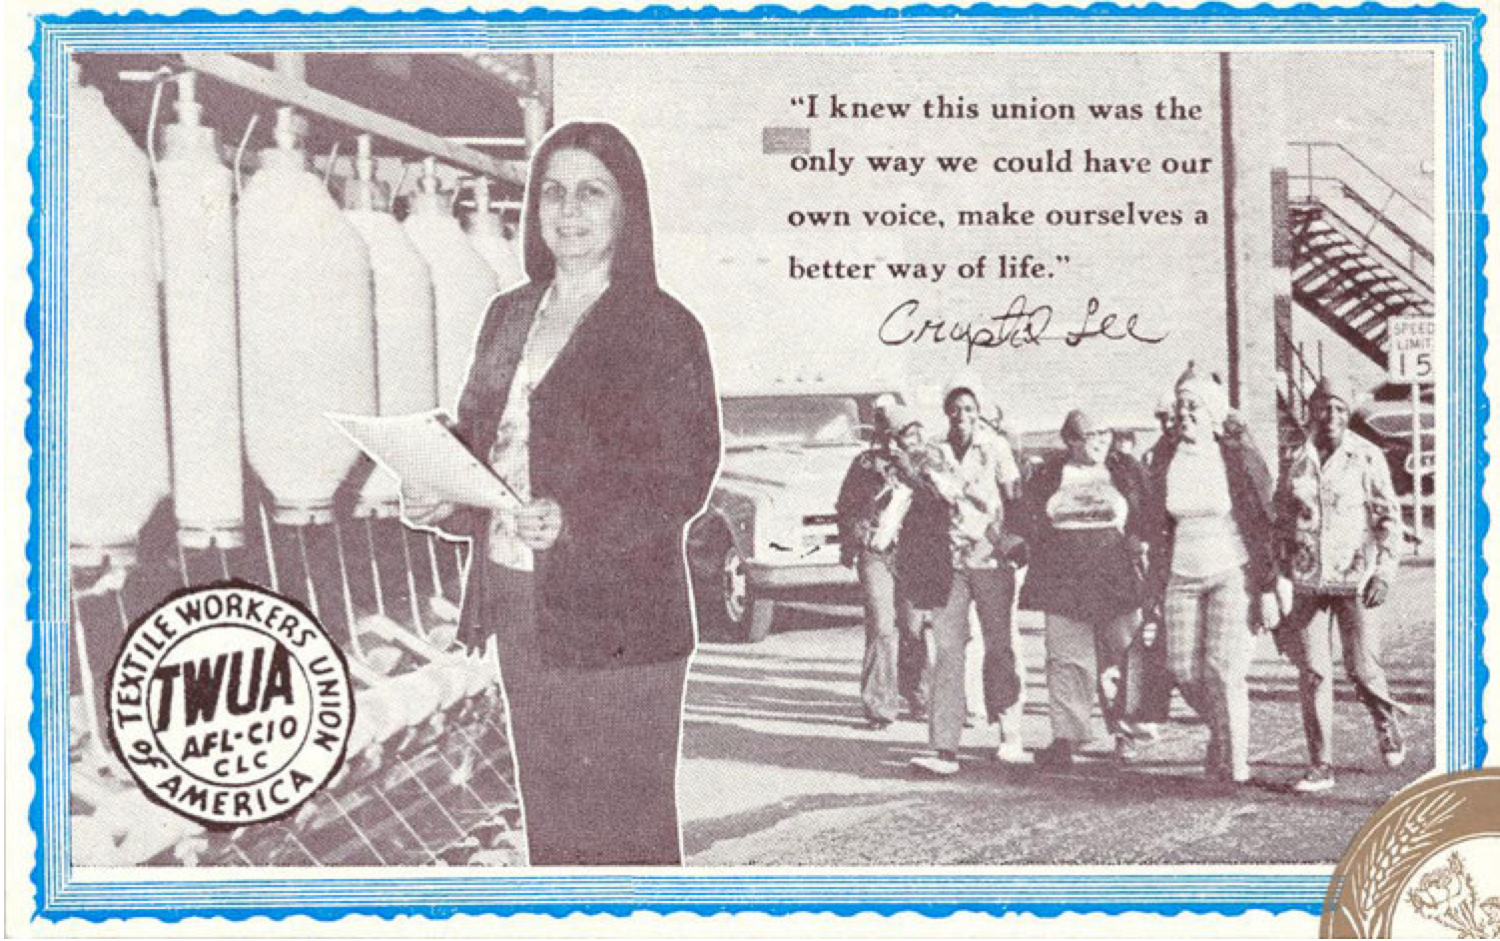 an introduction to the life of norma rae For norma rae, sonny seems to be the kind of man who will make a good husband and father, the most important qualities in a man at this stage of her life like they do every few years, a textile workers union of america representative, this time in the form of new york jew reuben warshowsky, arrives in town, his goal to unionize the workers.